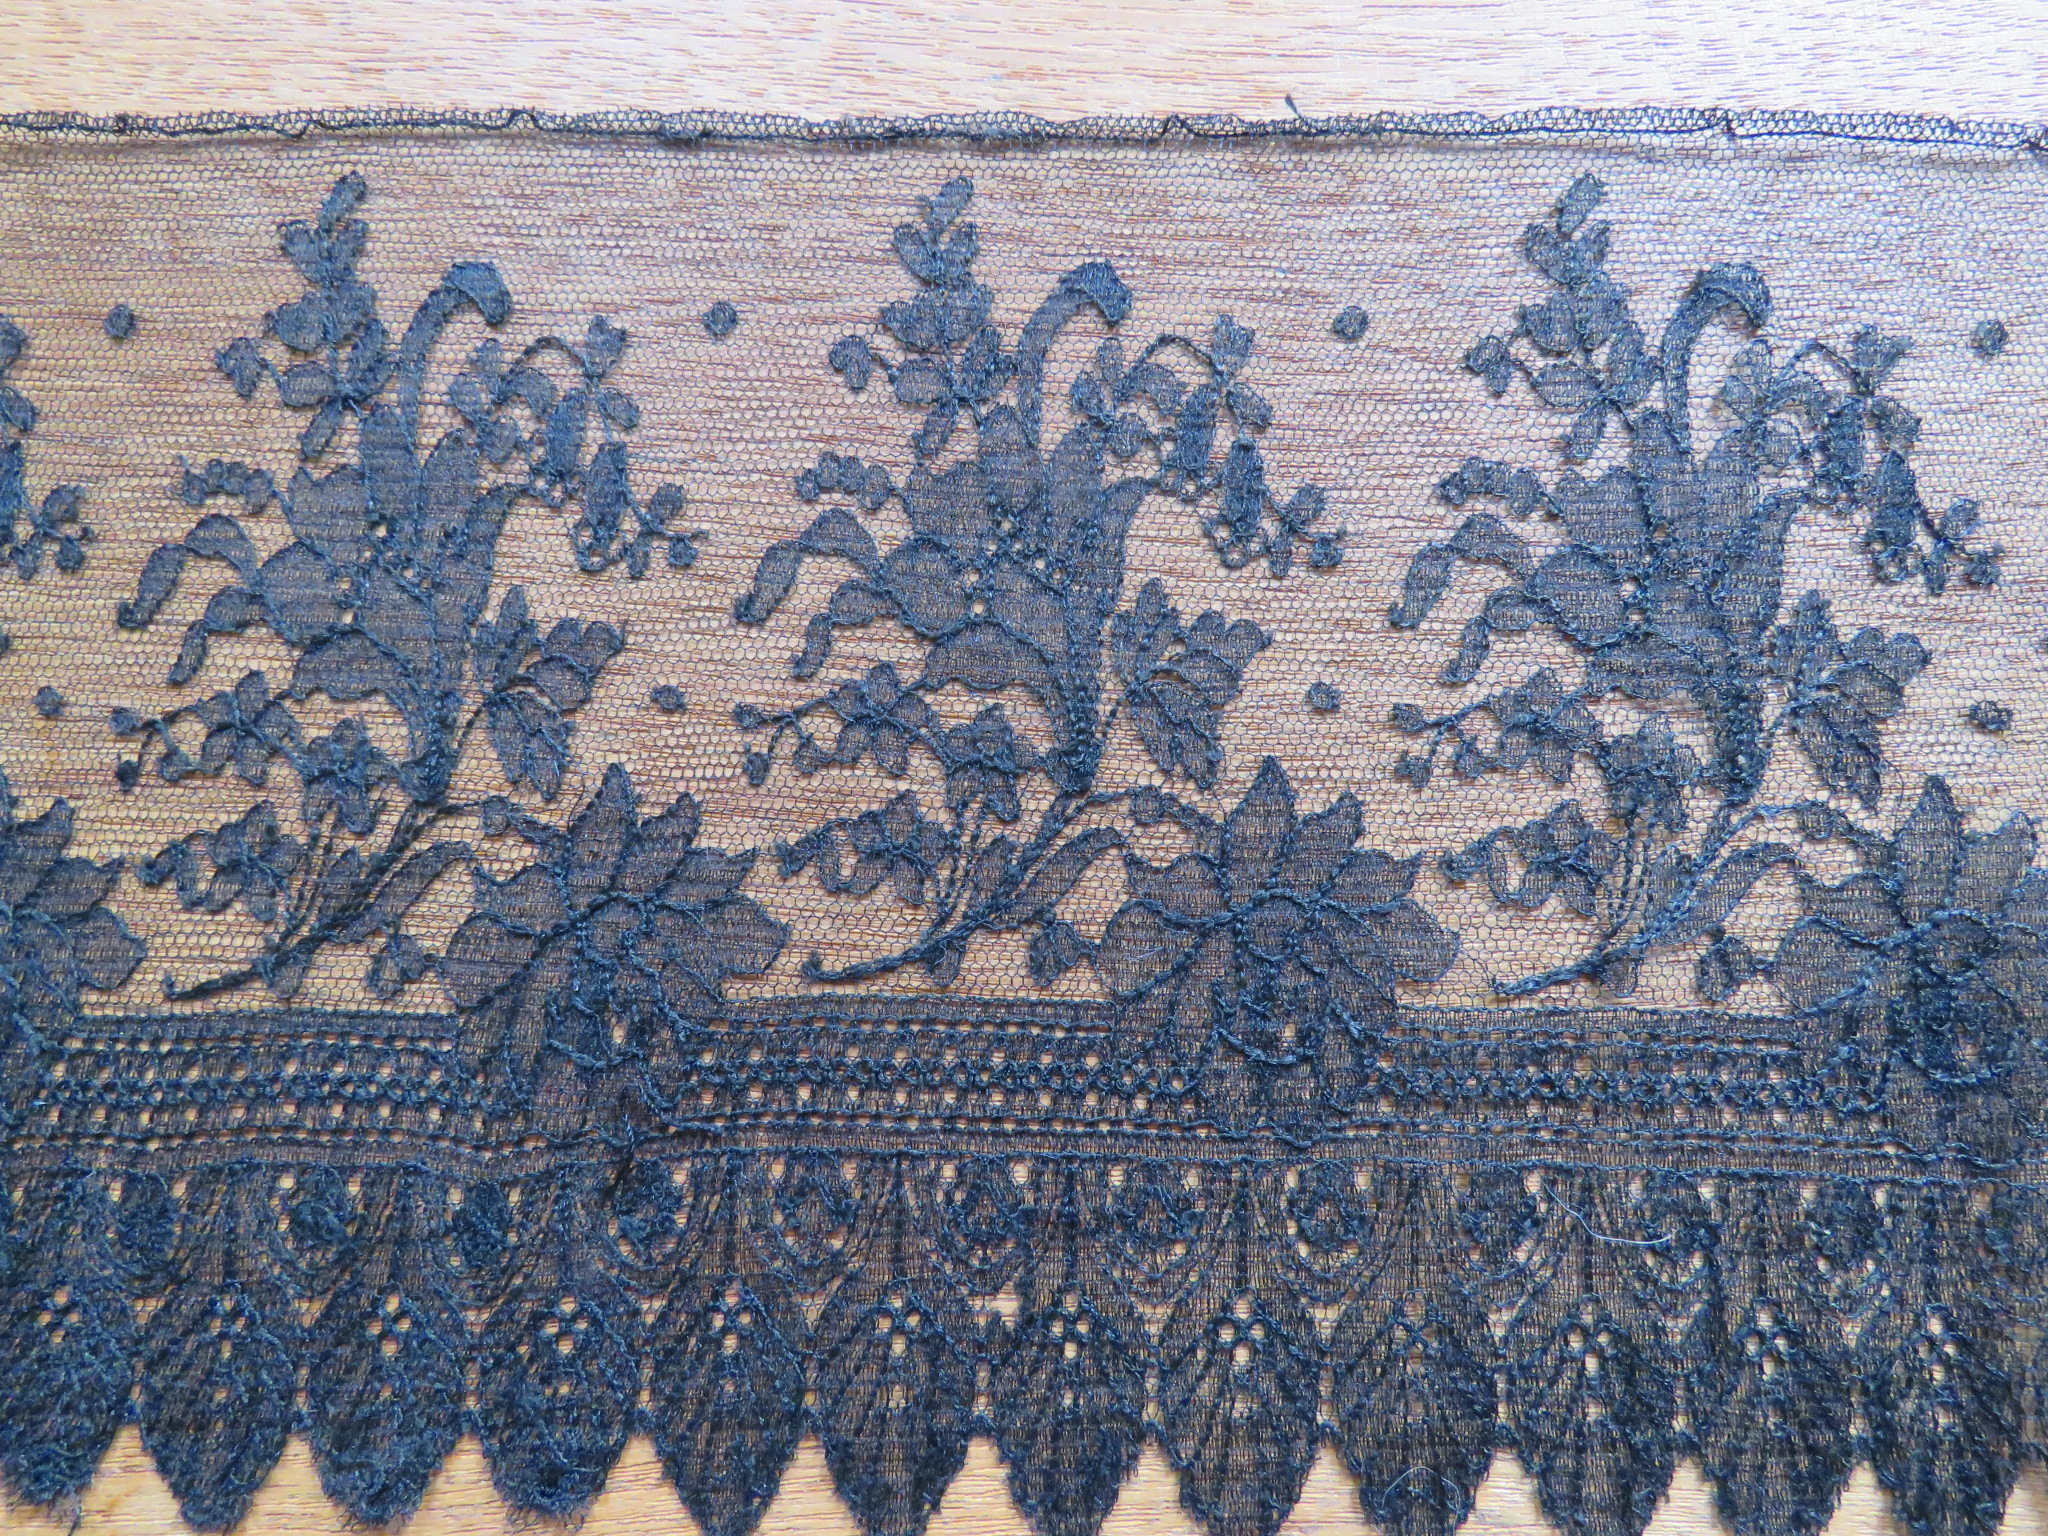 "Antique Black Chantilly Lace Trim Edging Scallop sewing craft dolls 12"" x 5 6/8"" (LAC-259)"